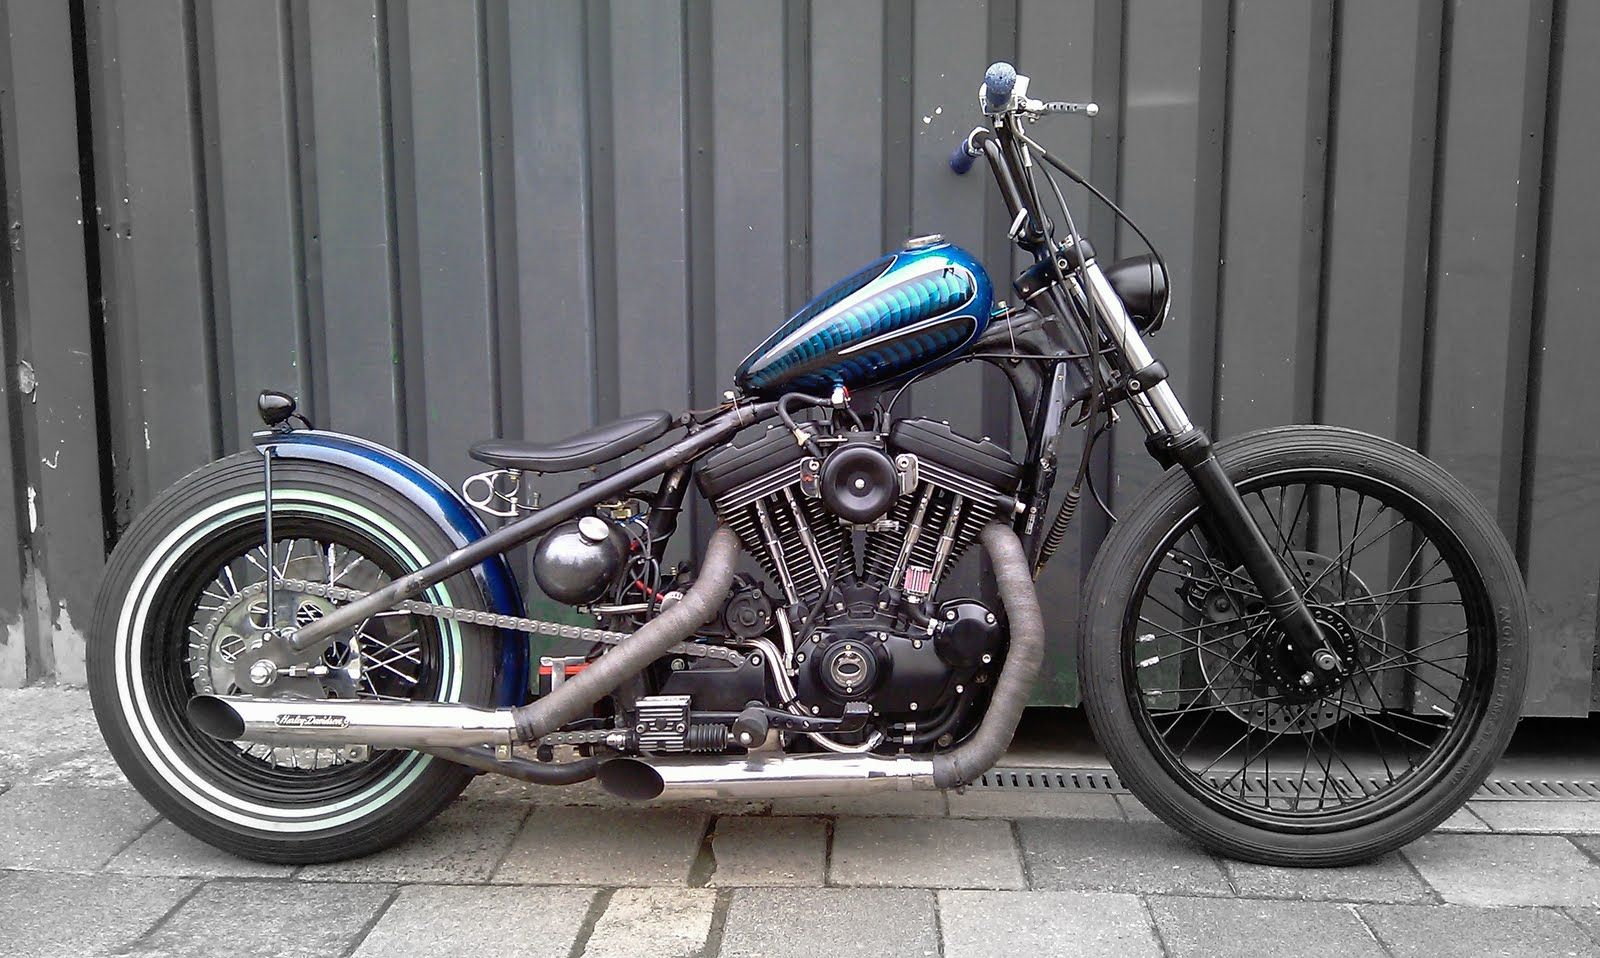 SPORTY BOBBER PICTURES - Page 481 - The Sportster and Buell Motorcycle Forum